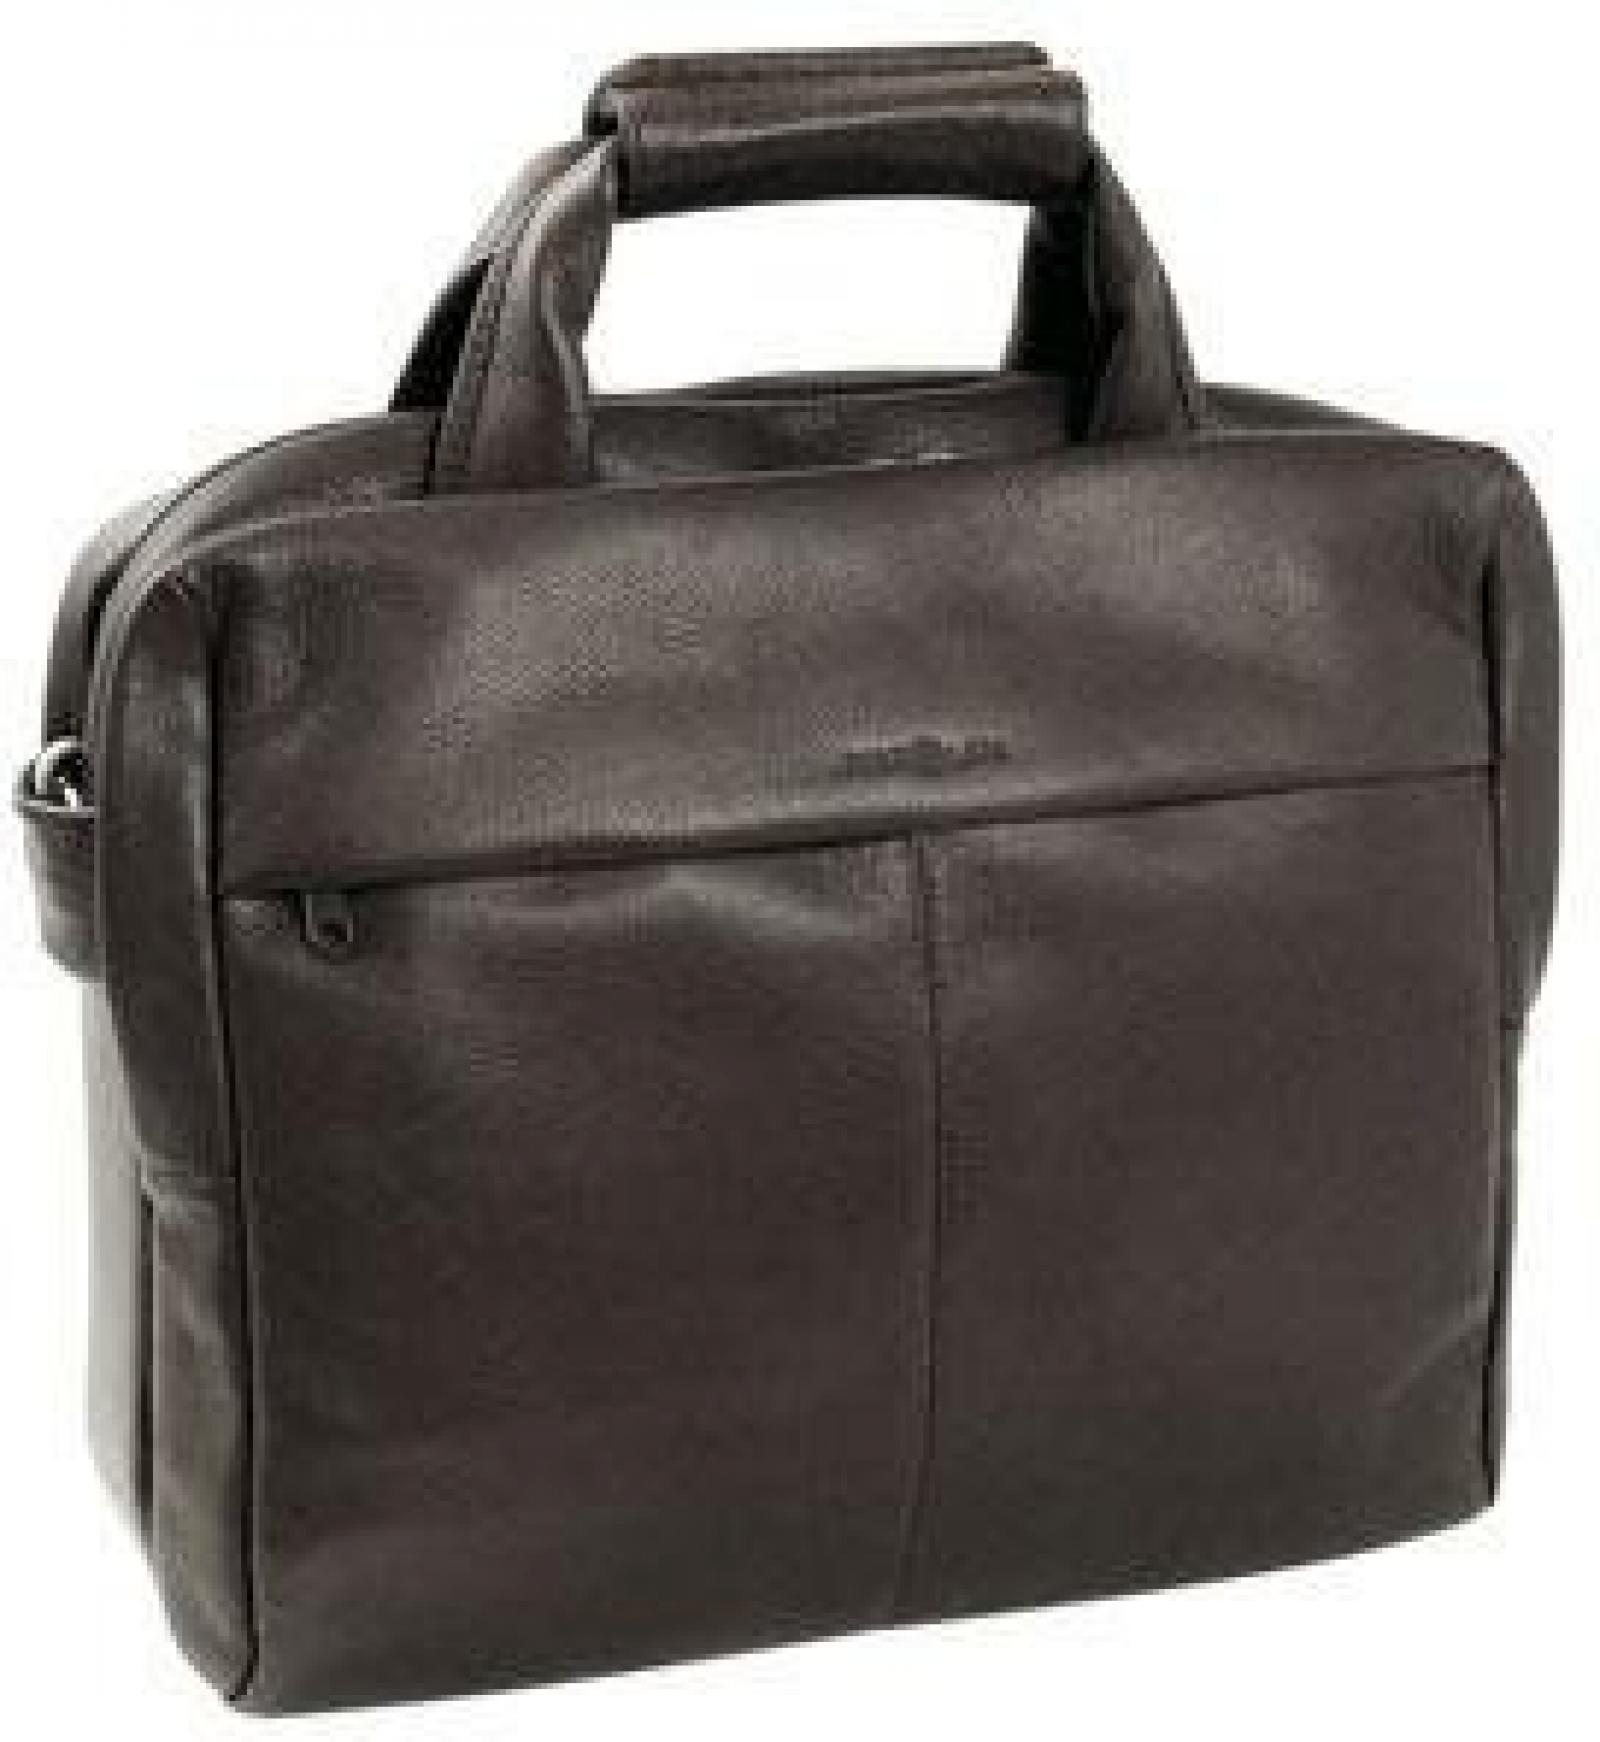 Harolds Country Aktentasche Leder 38 cm Laptopfach